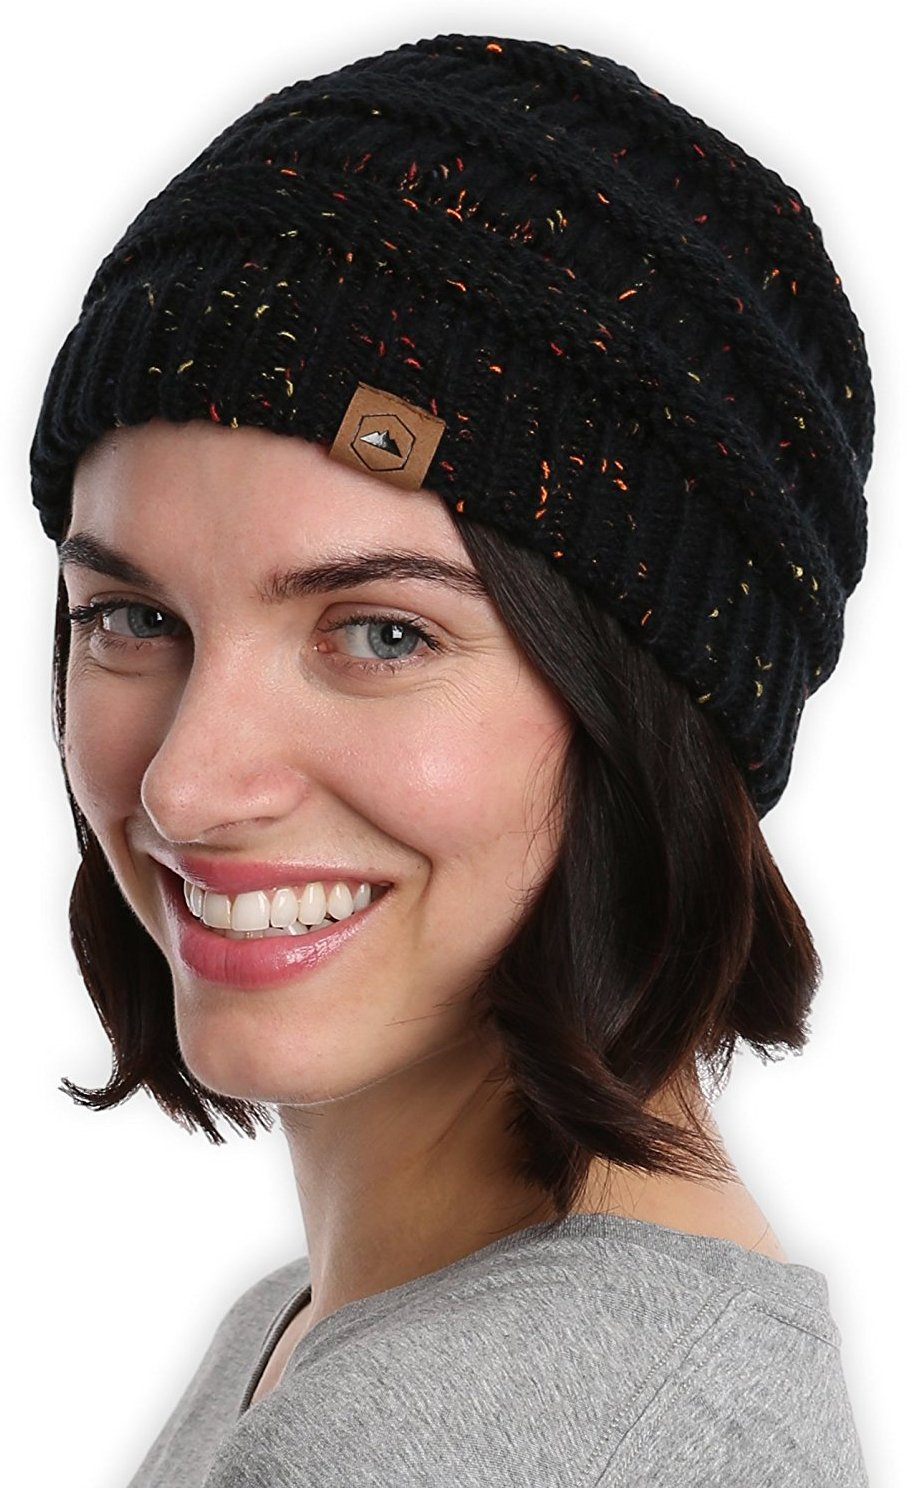 Tough Headwear Cable Knit Beanie Thick, Soft & Warm Chunky Beanie Hats for Women & Men Serious Beanies for Serious Style